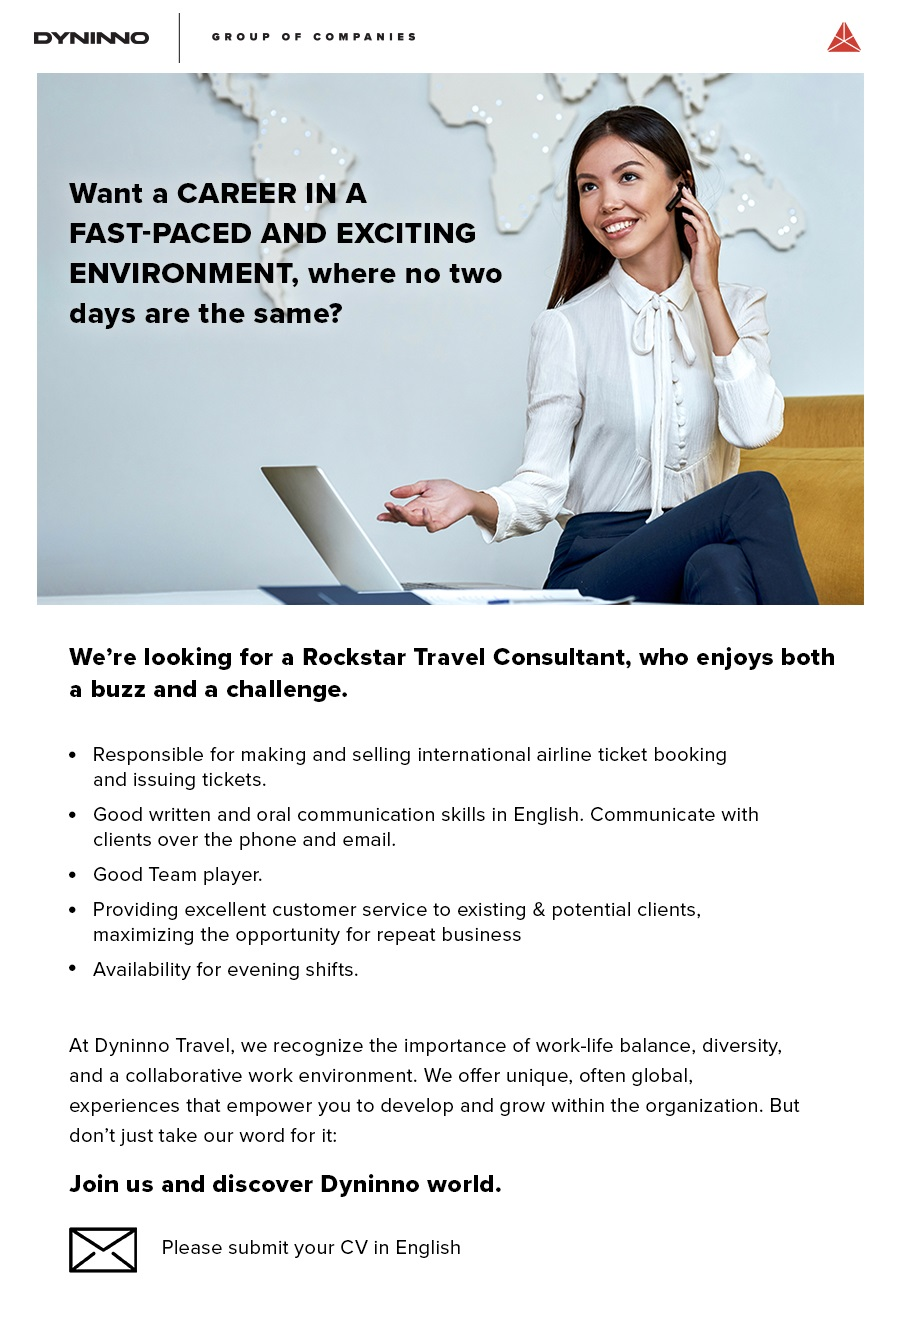 Our requirements are:  Advanced English level. Availability for evening shifts. Hard effort and fast adaptability. Quick learning skills. Impeccable Customer focus. Top-level Attention to detail and Situational awareness. Relentless desire to grow professionally and financially.  Responsibilities:  Processing new customer inquiries - Cooperating with incoming customers to determine their needs and advising them on an appropriate destination, modes of transportation, travel dates, costs, and accommodations. Providing extended service - Making sure customers are happy and satisfied with our services from start to finish, ensuring long-term cooperation via excellent customer service and problem resolution skills. Facilitating deals/sales - Supporting the process for customers with professional insight and expertise. Developing professionally - Growing the level of expertise via attending extended training courses and seminars. Market networking - Supporting existing and exploring new contacts in order to maintain a stably evolving customers' database. Travel software activity - Engaging with global consolidators to research and deliver the best solutions to customers in a designated Travel software.   DYNINNO Travel Services LLC is part of an international DYNINNO Group of companies that has active facilities in the Philippines, Colombia, Egypt, India, US, UK, Russia, Romania, Latvia, and Moldova. We use cutting-edge technologies to excel in our Travel, FinTech, Entertainment, and IT business divisions.  DYNINNO Travel Services LLC has started its operations in Bucharest in 2020 and has rapidly grown to 20 employees with plans to grow to over 50 qualified Travel Consultants in 2021. Our associates are the driving force of our business. We coach our employees in the latest sales techniques and teach them how to use the unique tools that make us leaders of the industry. It's a great place to kickstart a professional life and we're constantly working on turning talents in